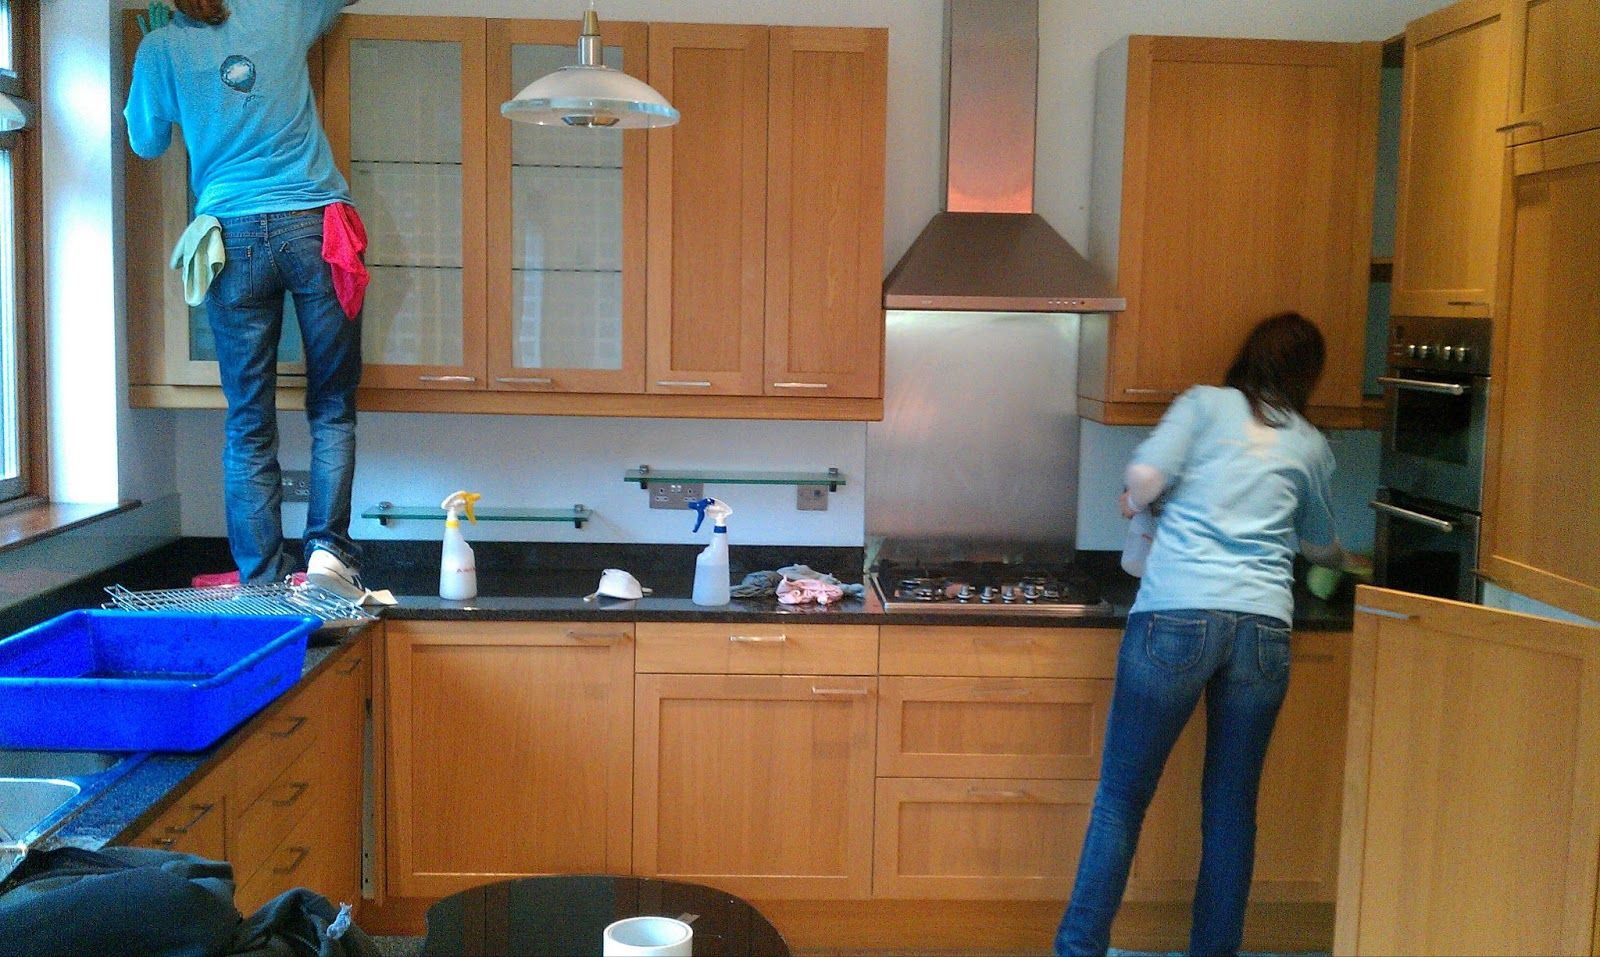 Reasons to hire an End of Tenancy Cleaning Service How